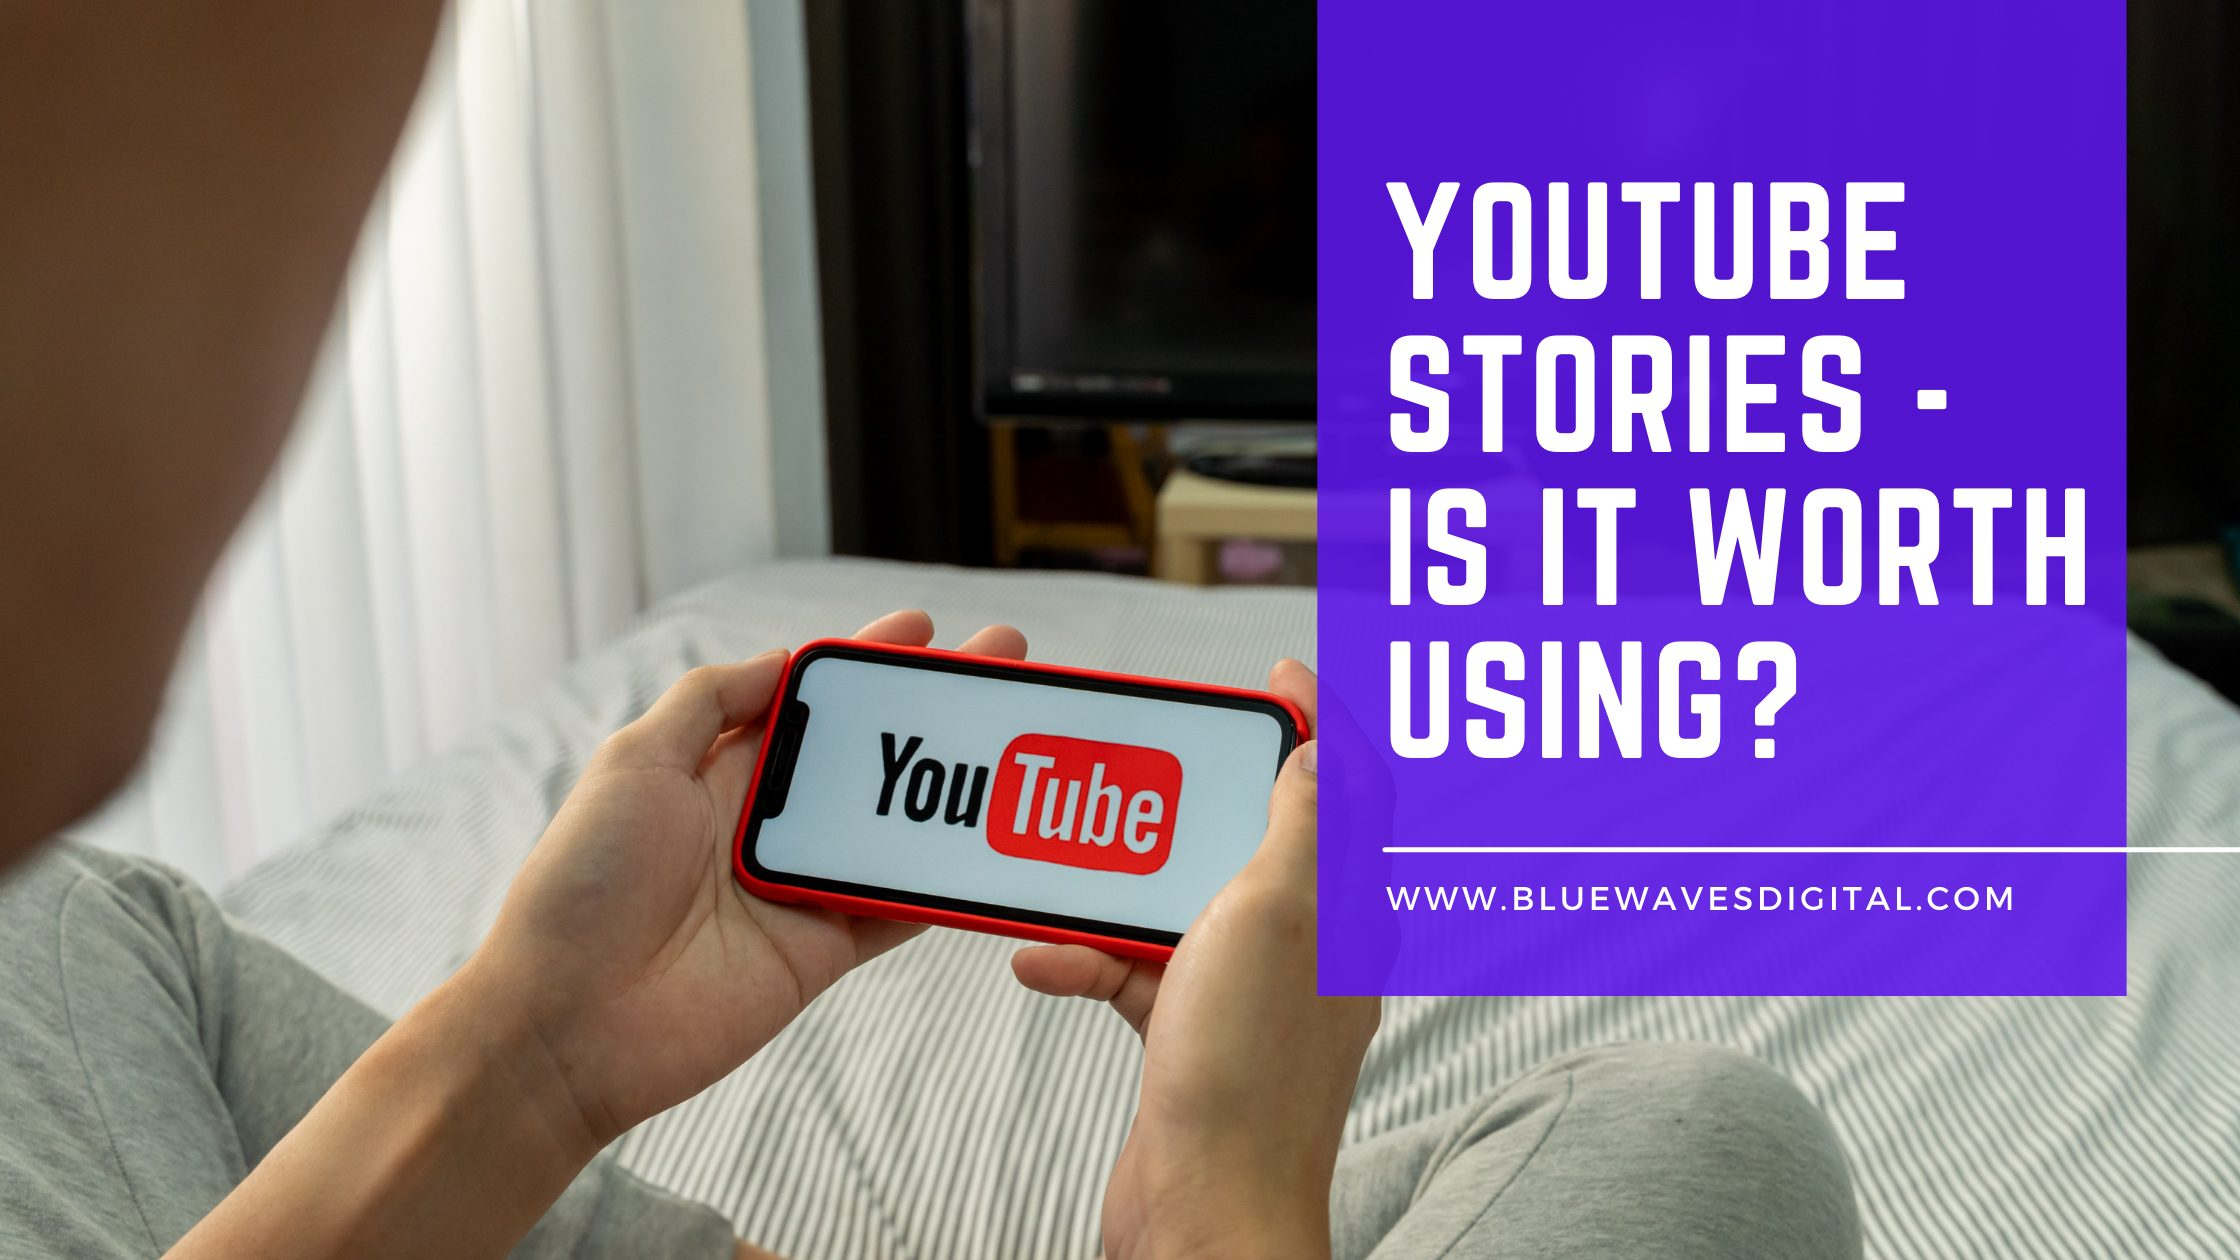 YouTube Stories - Is it Worth Using?